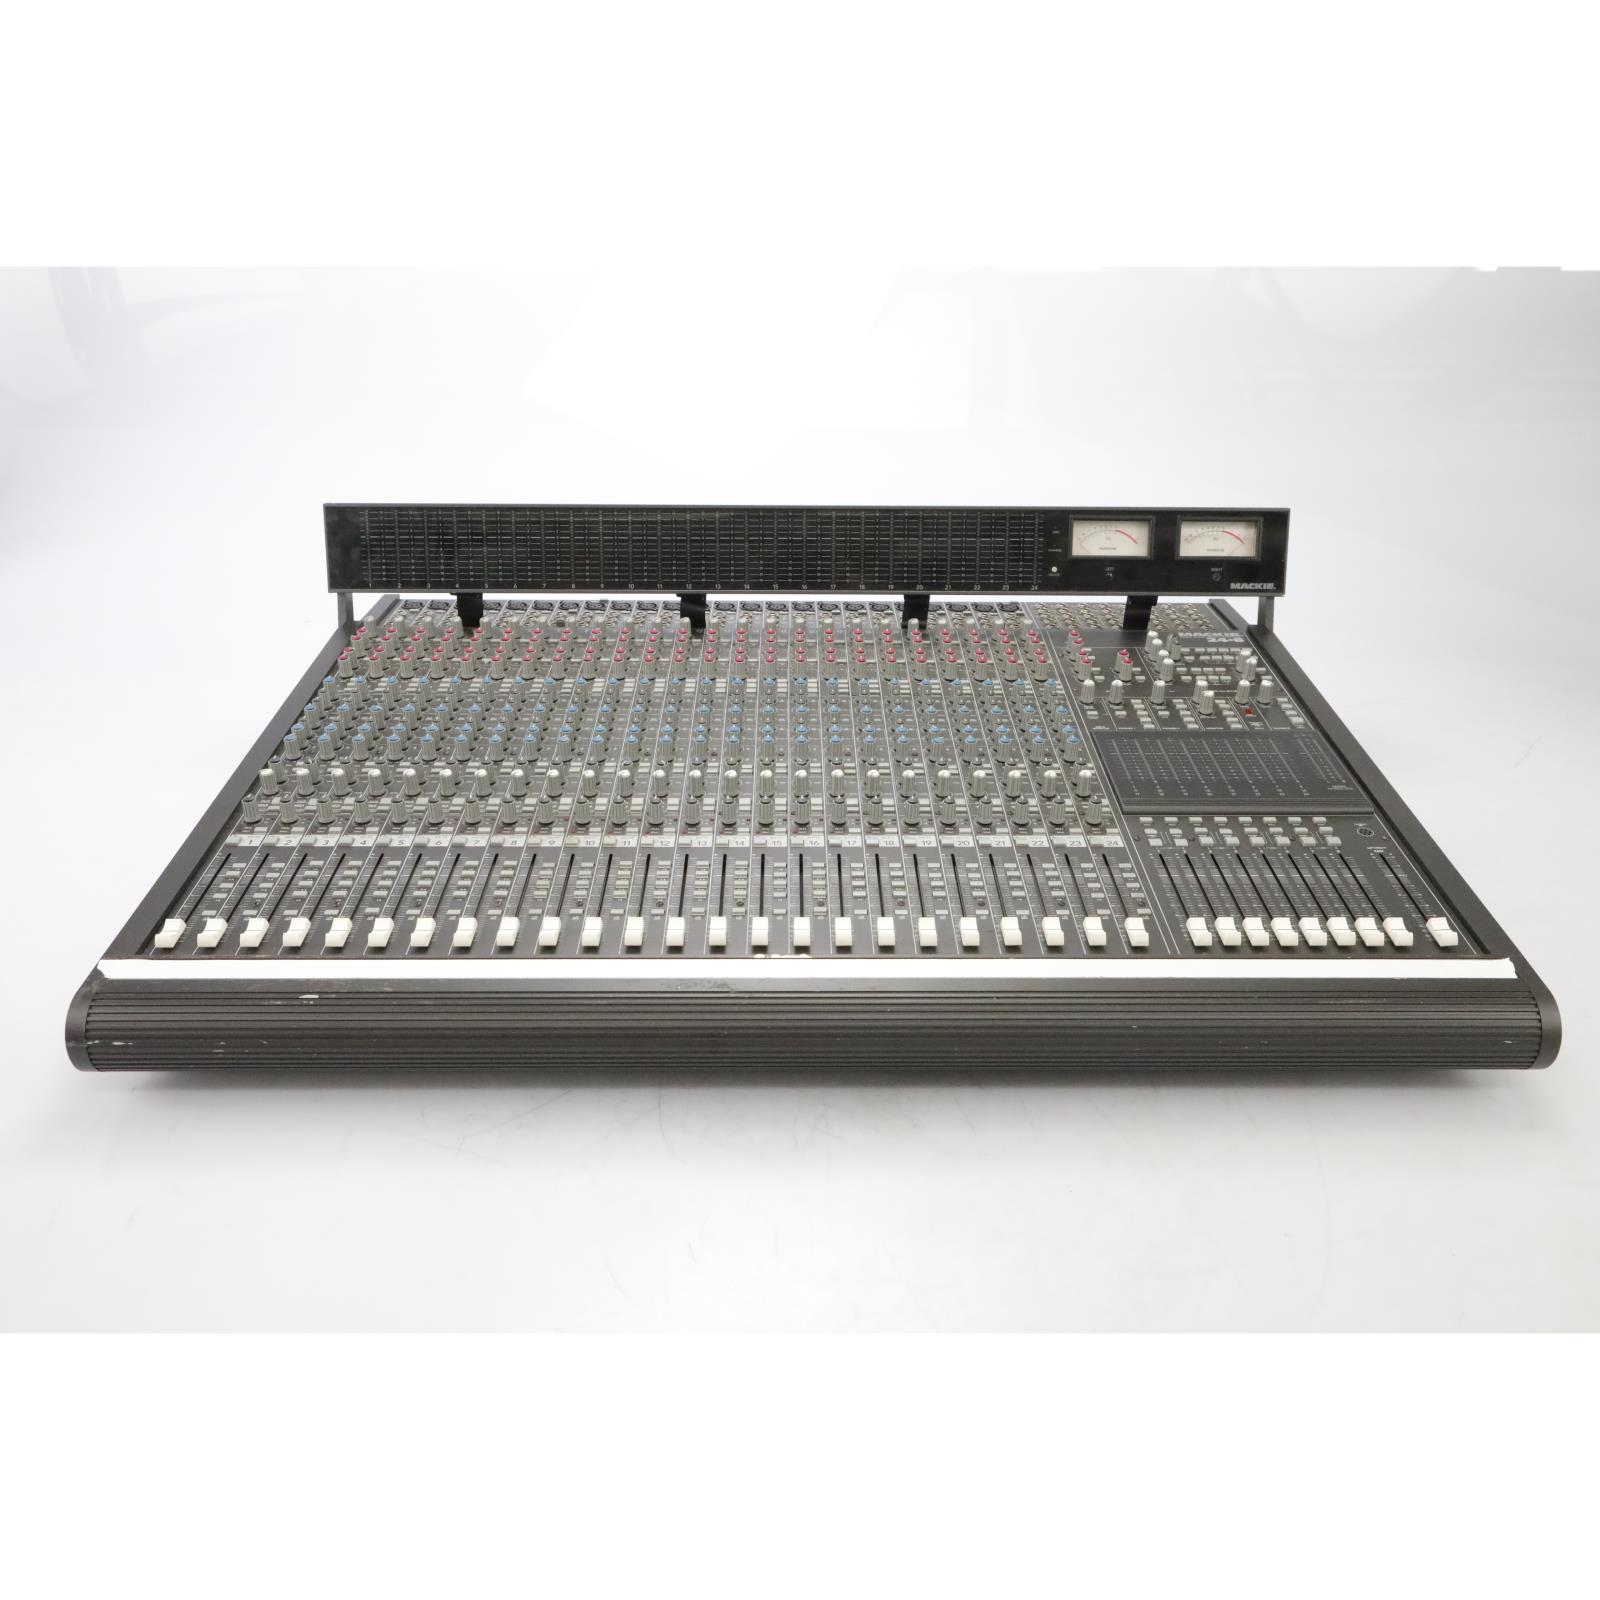 Mackie 24.8 24-Channel 8-Bus Mixing Console w/ Power Supply #45157